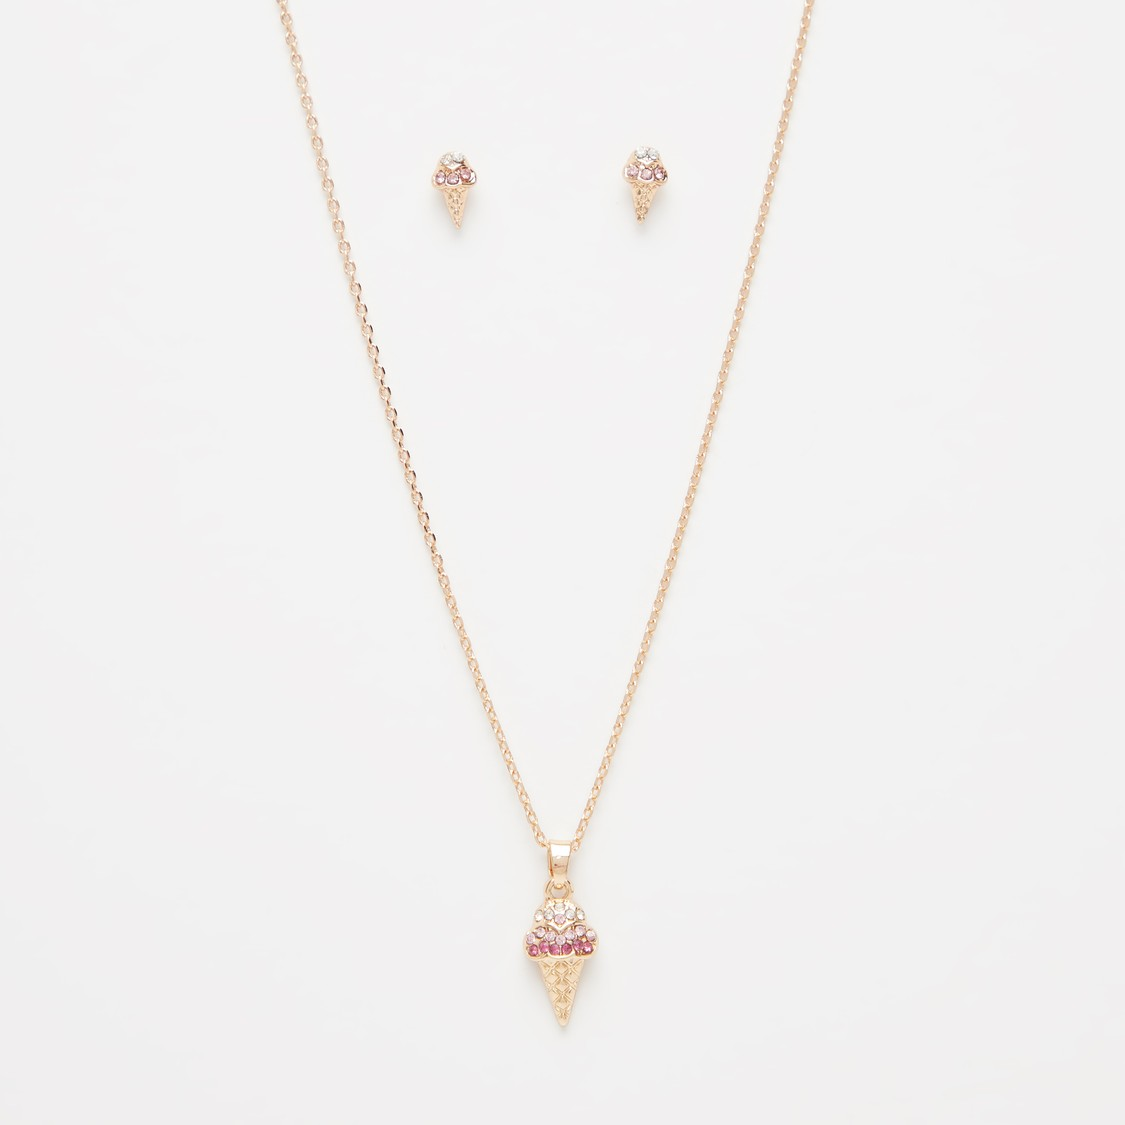 Studded Pendant Necklace and Earrings Set